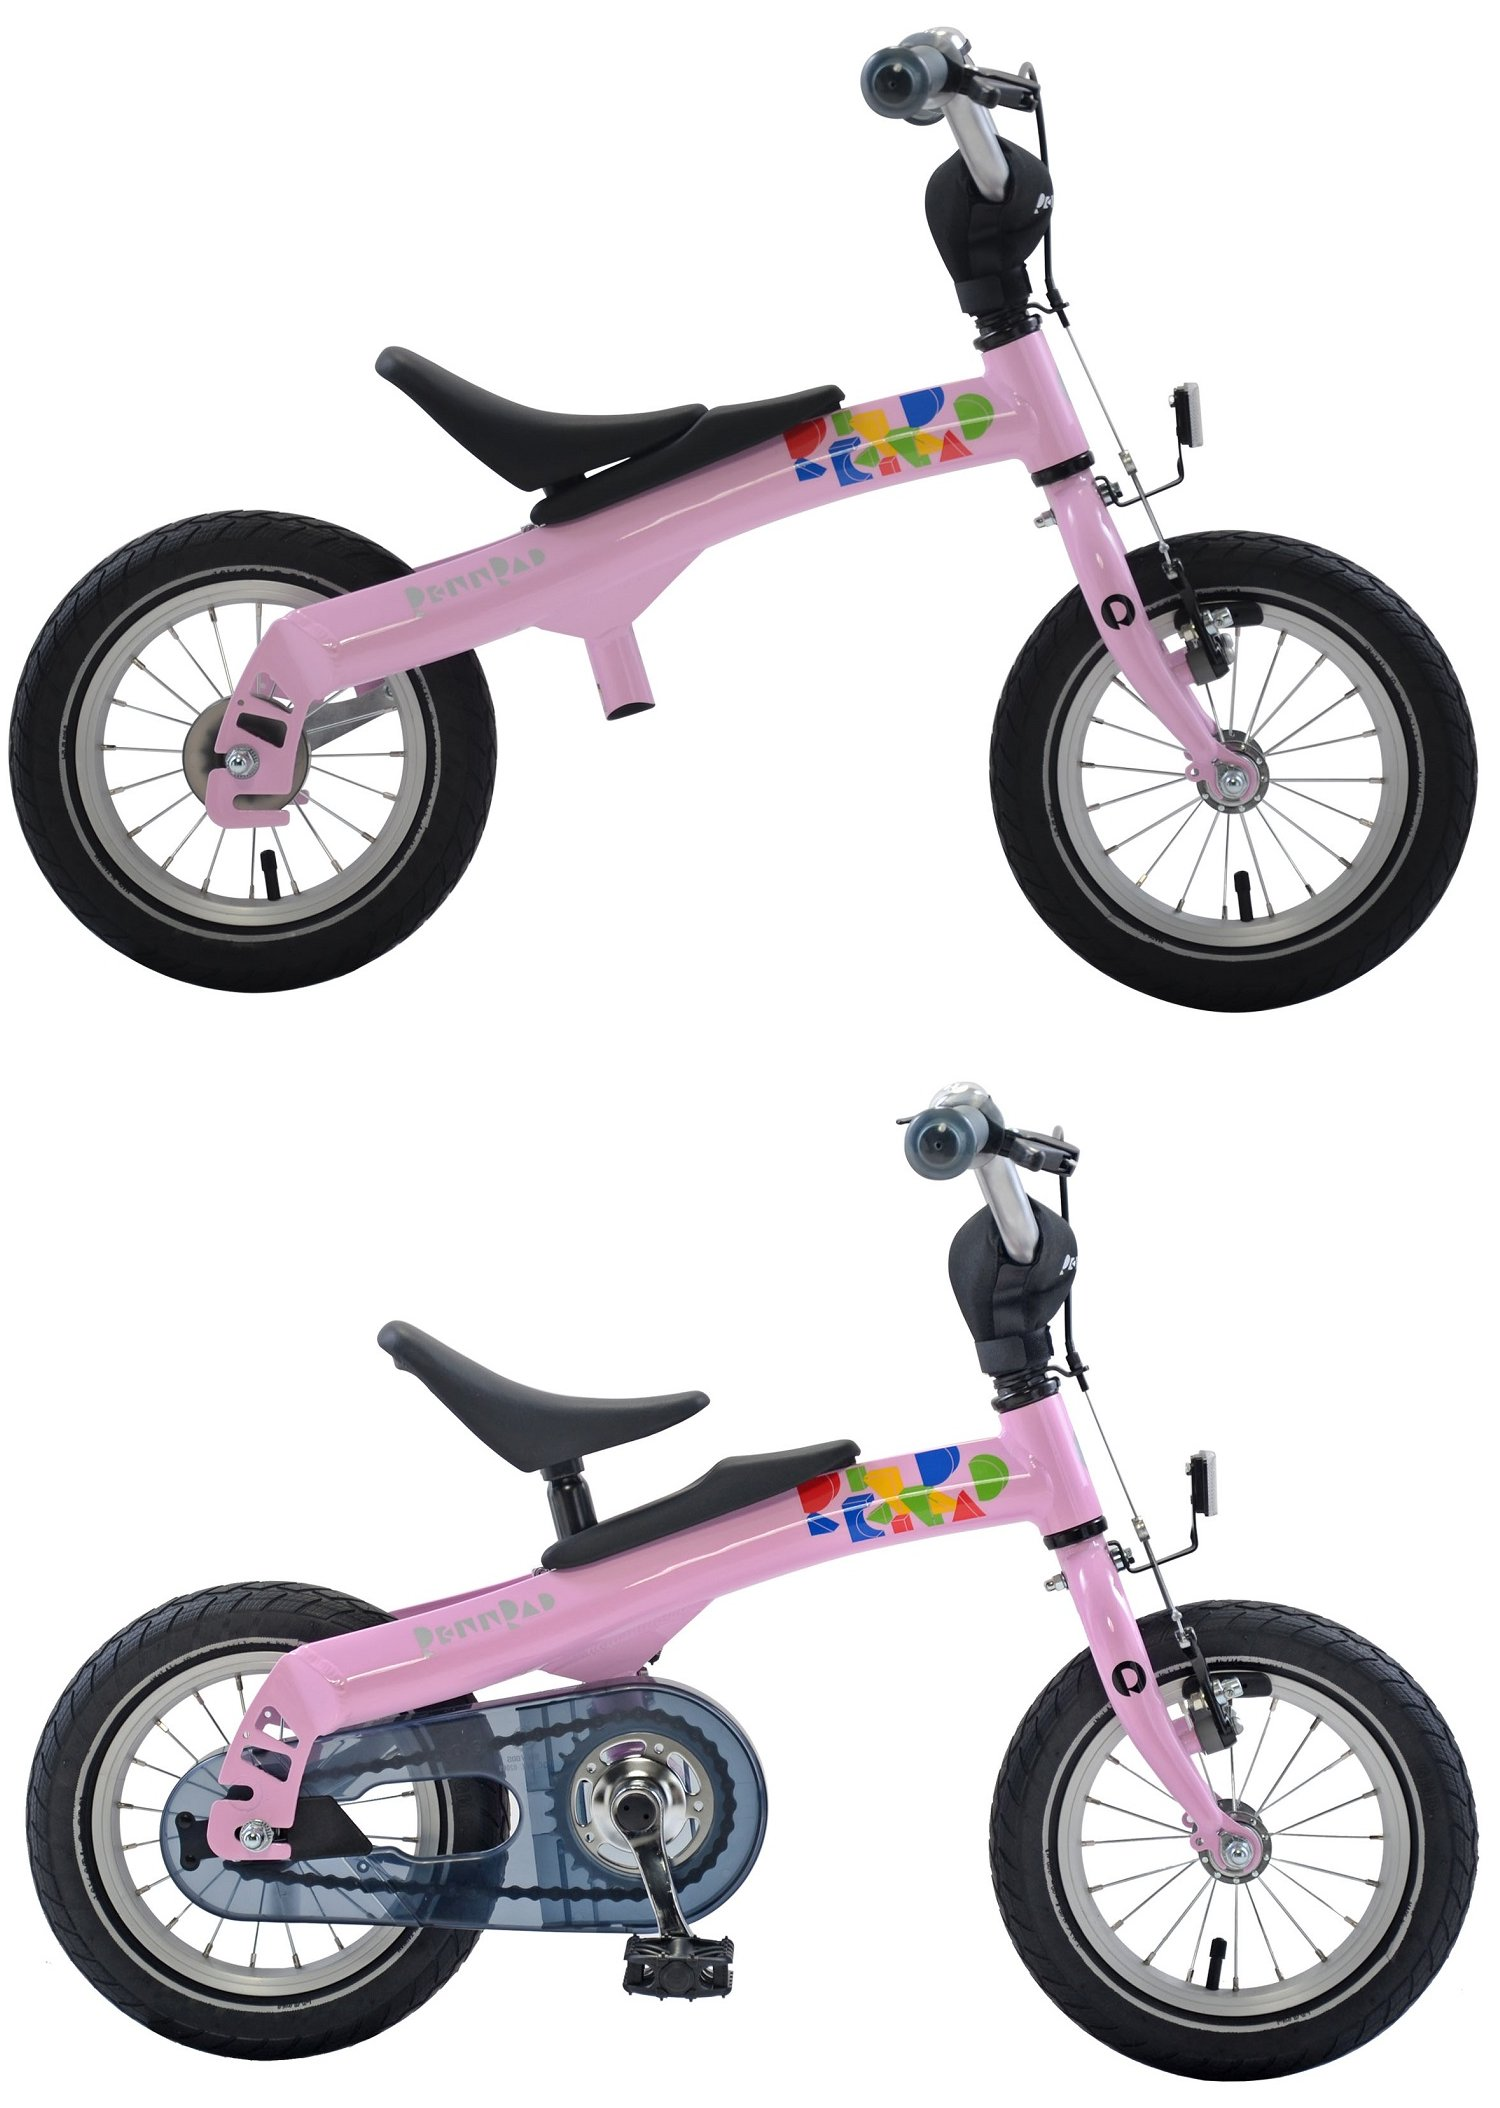 RENNRAD 12 Dual Mode Run Ride Bike Pink